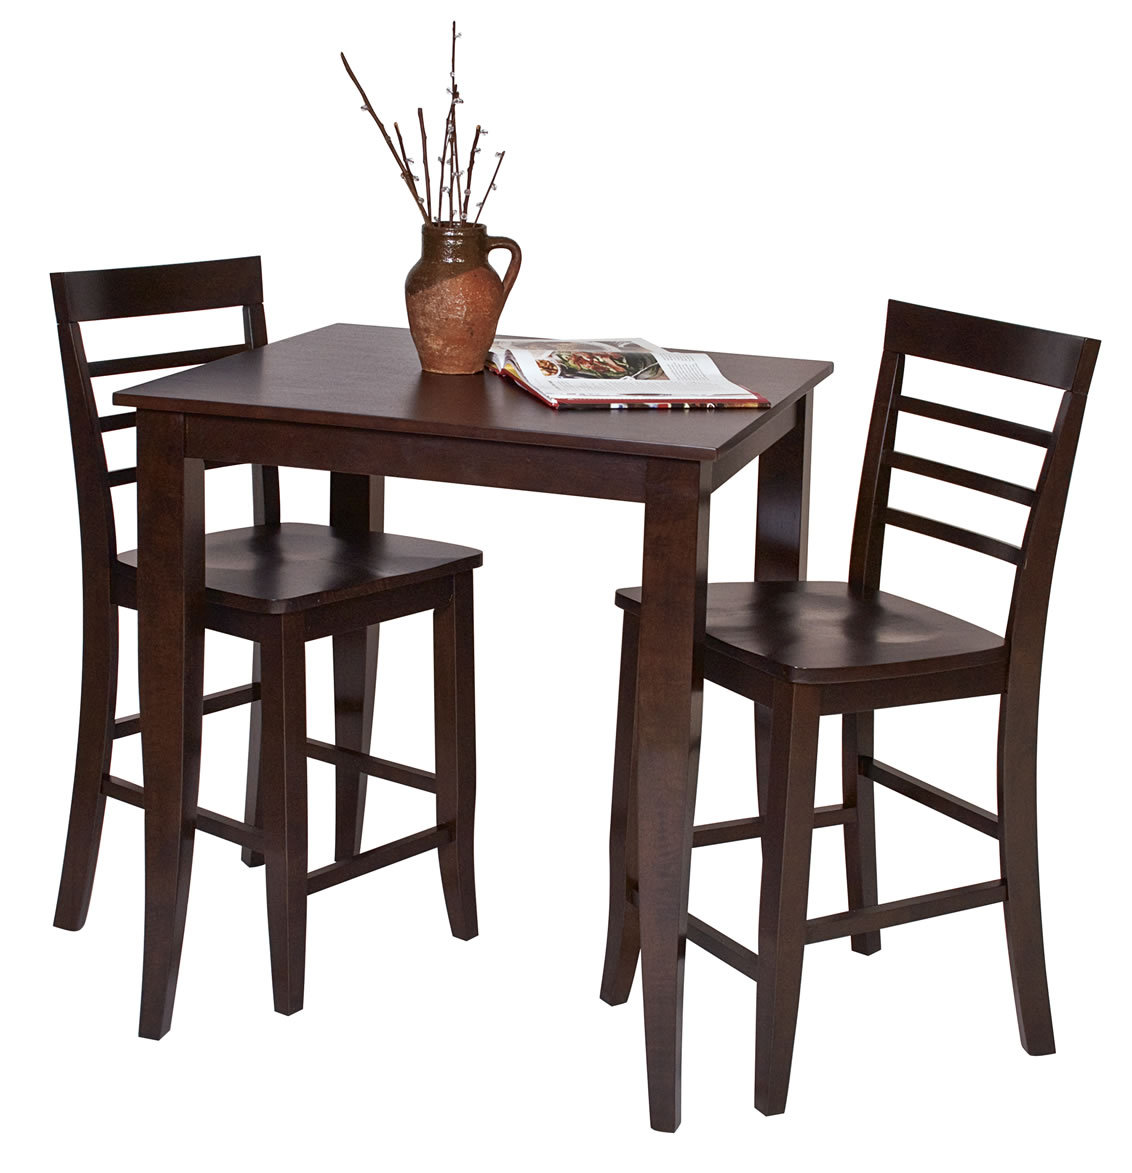 Pc set espresso wood bar bistro square pub table